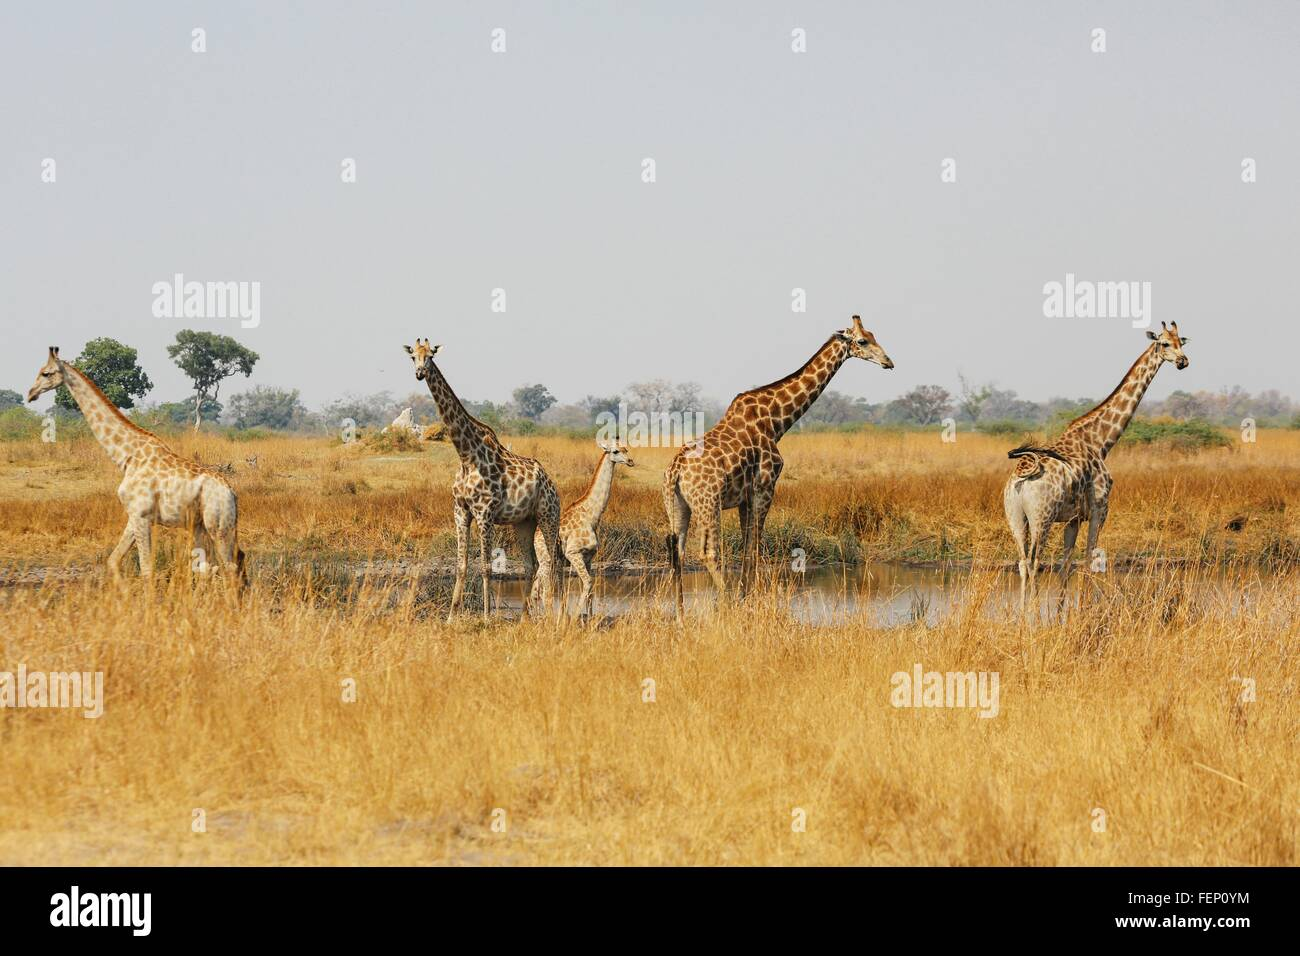 Tower of giraffes standing in water pan, Botswana - Stock Image